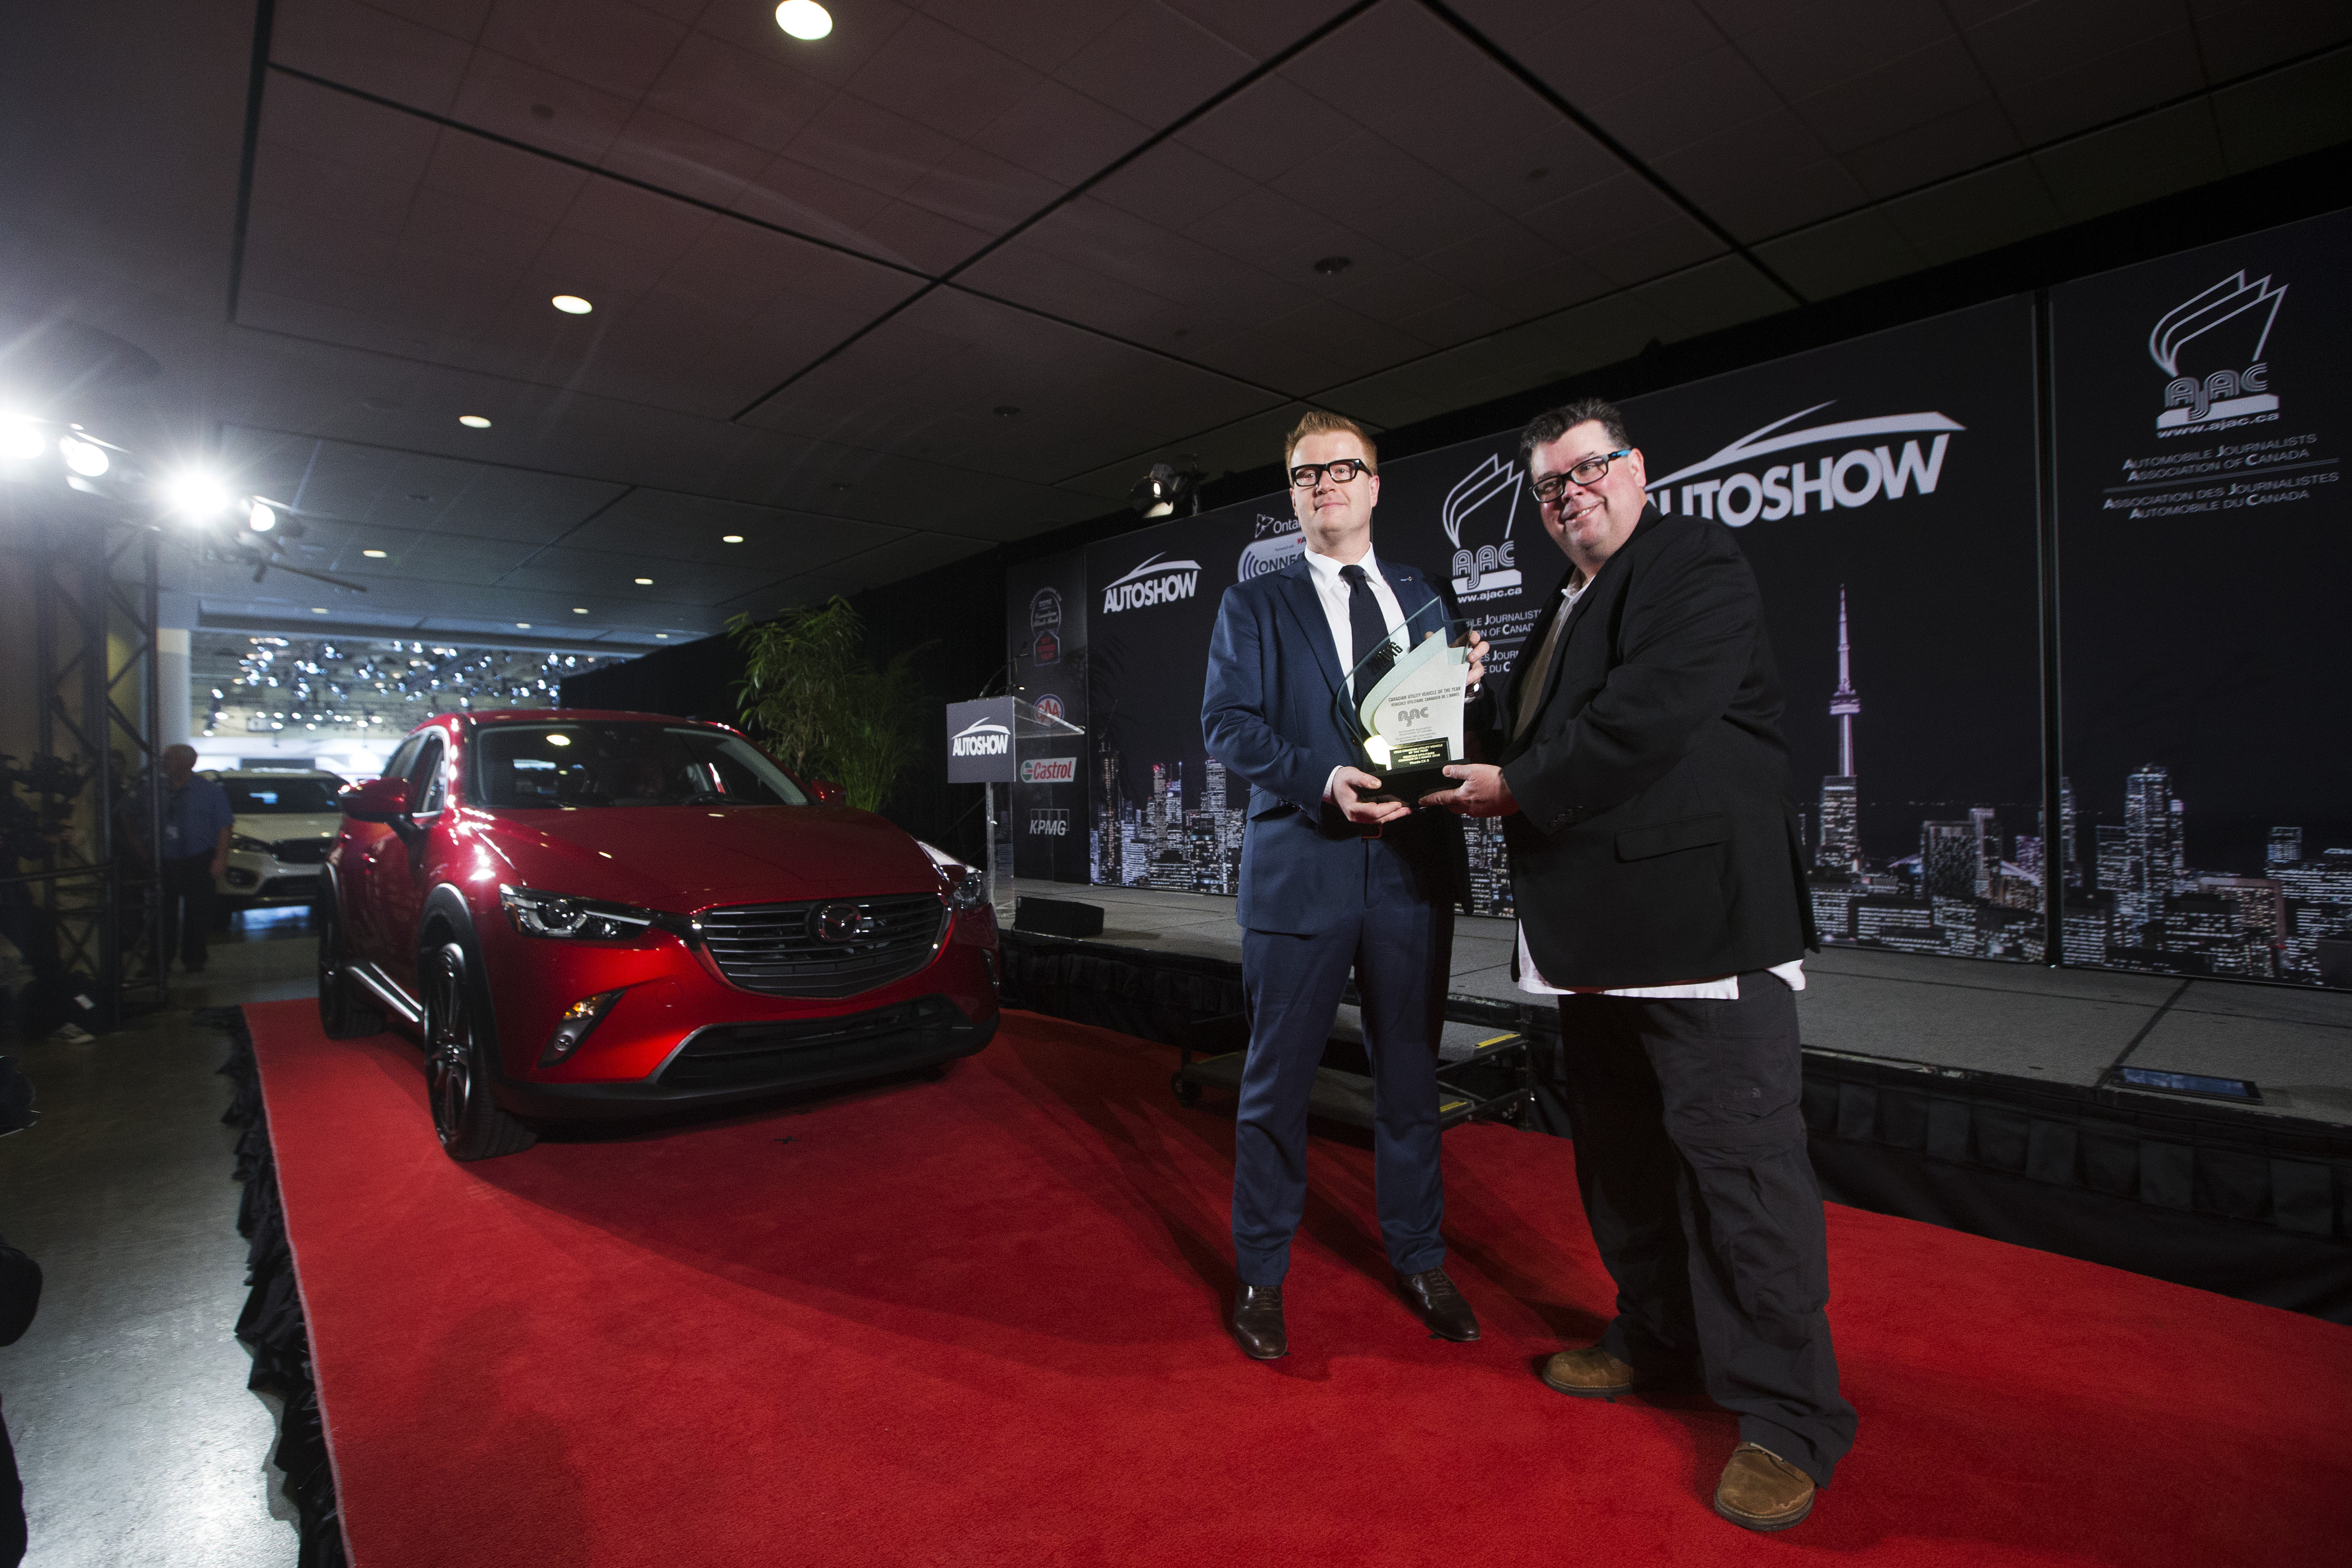 Vincent Reboul, Marketing Director at Mazda Canada Inc.left, poses for a photo with Gary Grant CCOTY Co-Chair, right, after the Mazda CX-3 was declared utility vehicle was declared the 2016 Canadian Utility of the Year by the Automobile Journalists Association of Canada (AJAC).  (Photos By: Michelle Siu)